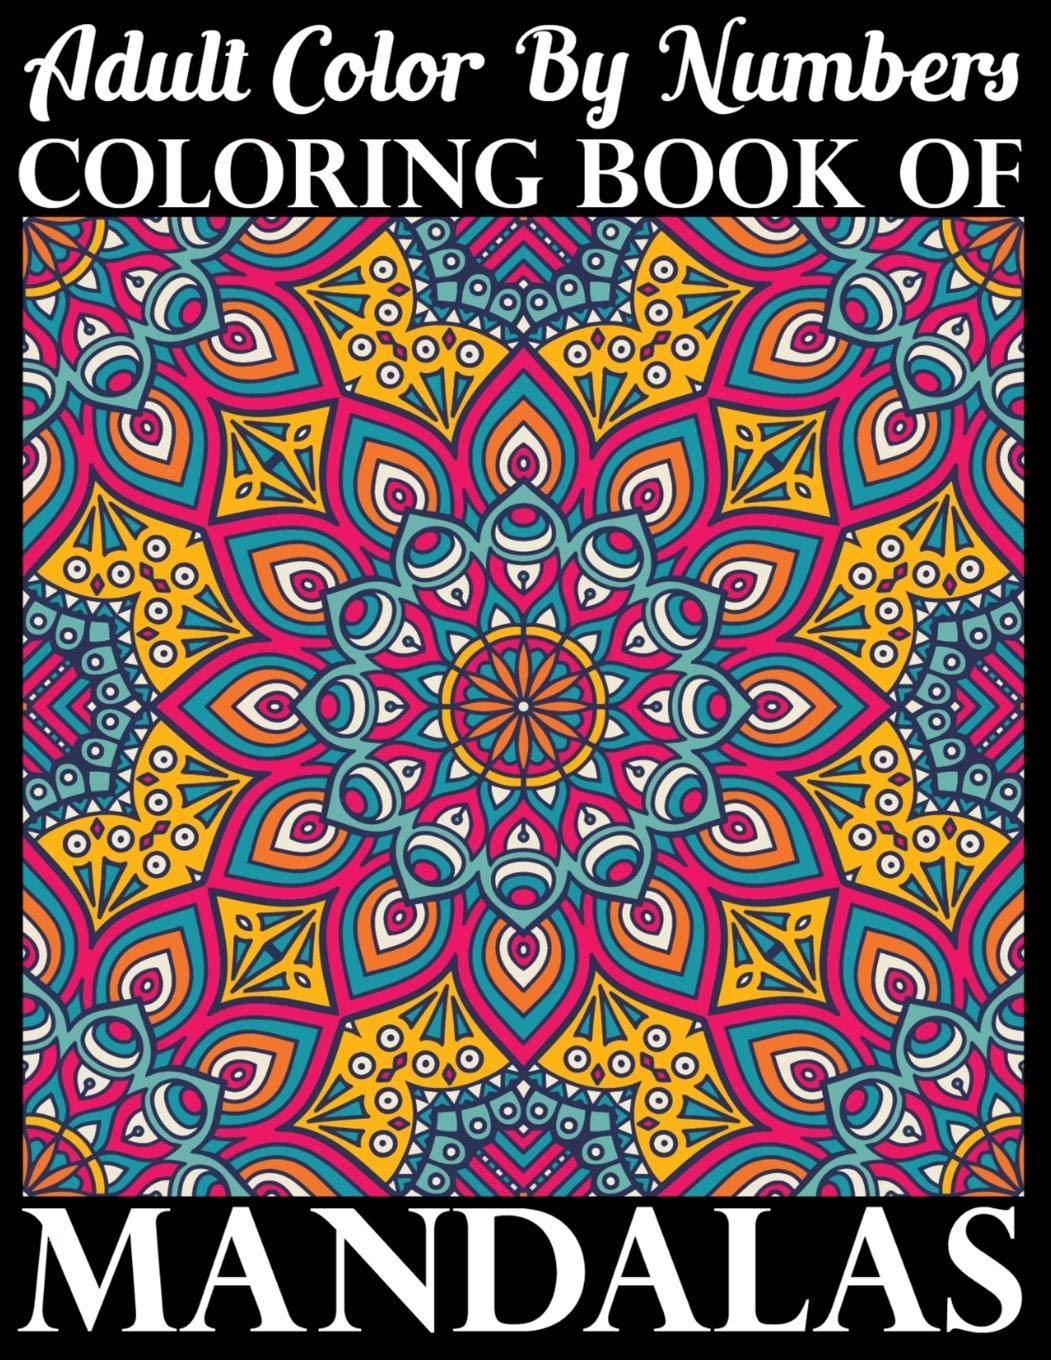 Amazon.com: Adult Color By Numbers Coloring Book of Mandalas: Adult  Coloring Book 100 Mandala Images Stress Management Coloring Book For  Relaxation, Meditation, Happiness and Relief & Art Color Therapy  (9781081123246): Publishing, Sky: